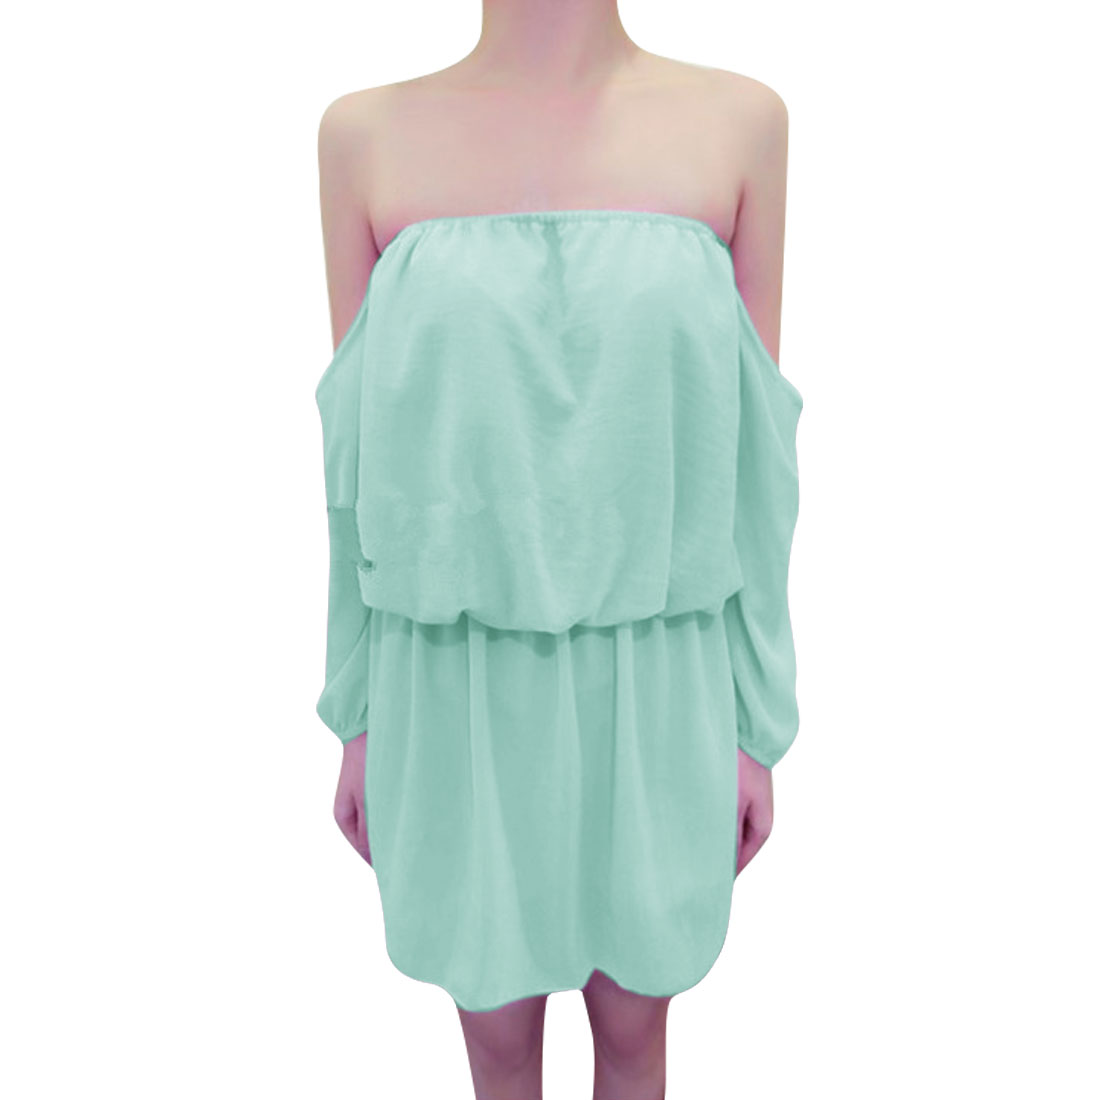 Women's Strapless Off Shoulder Long Sleeves Elastic Waist Mint Green Dress XS